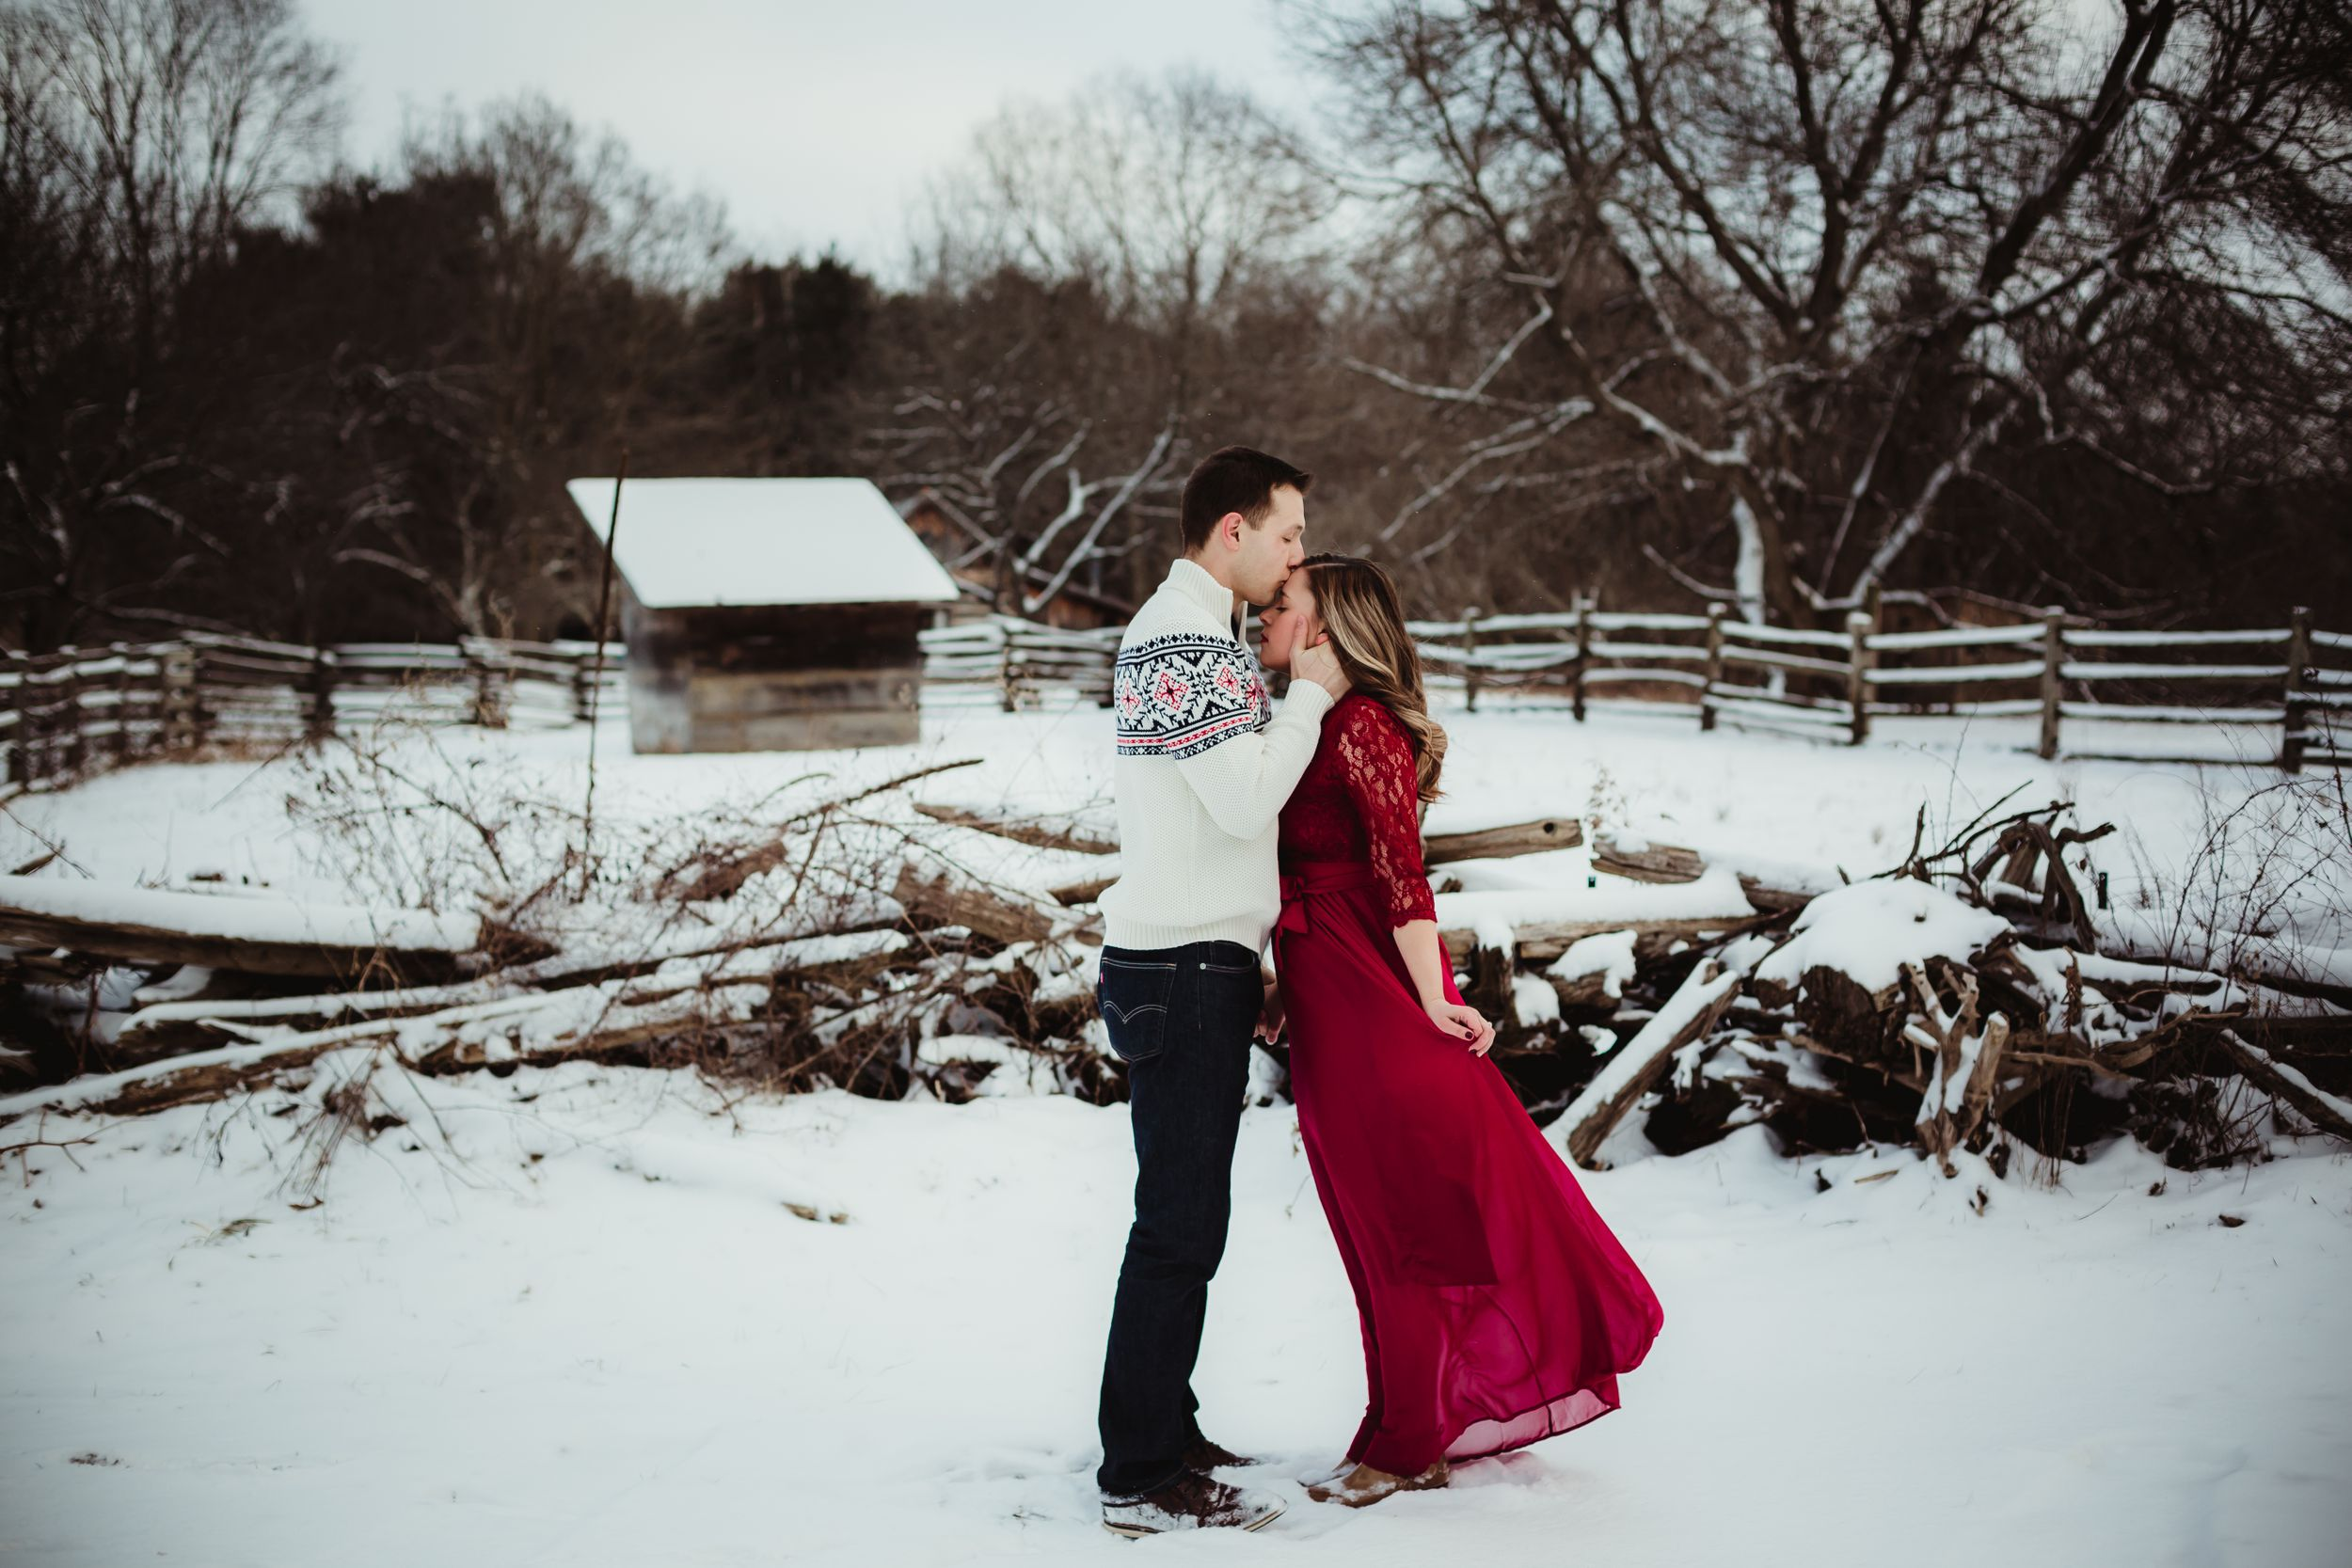 A man kissing a woman's forehead outside in the winter surrounded by snow. She is wearing a long red dress.